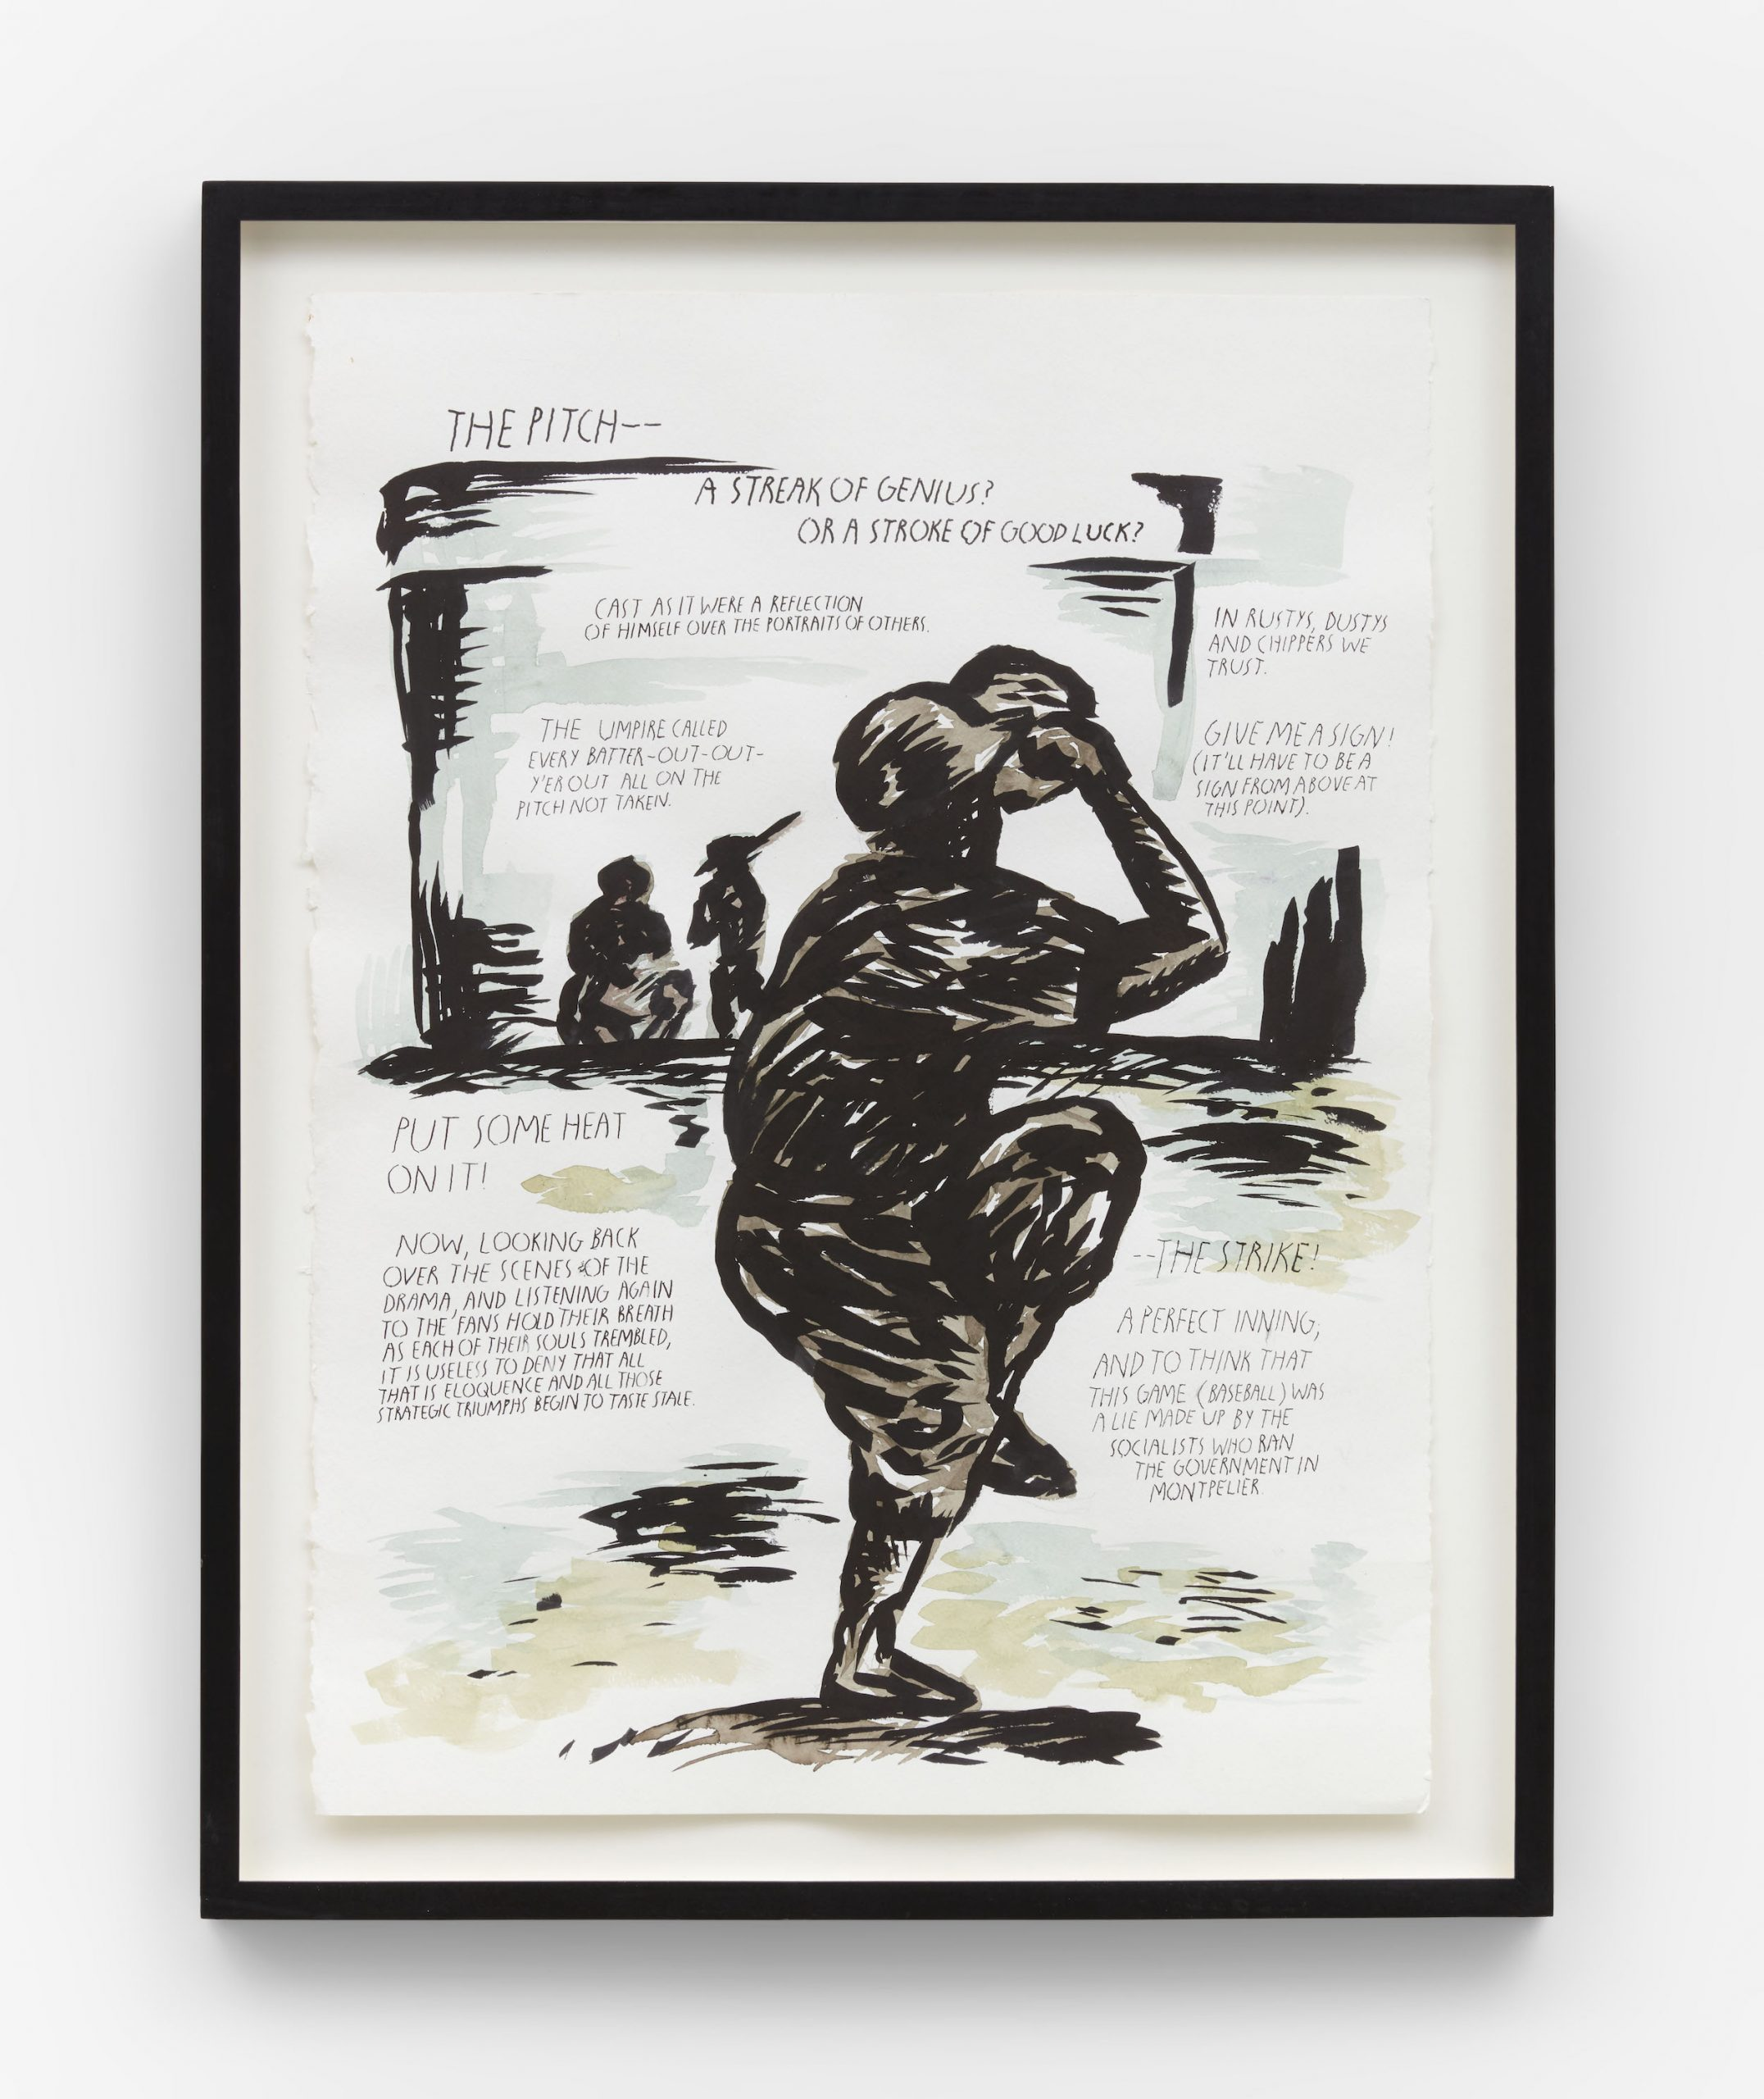 Raymond Pettibon No title (The pitch)